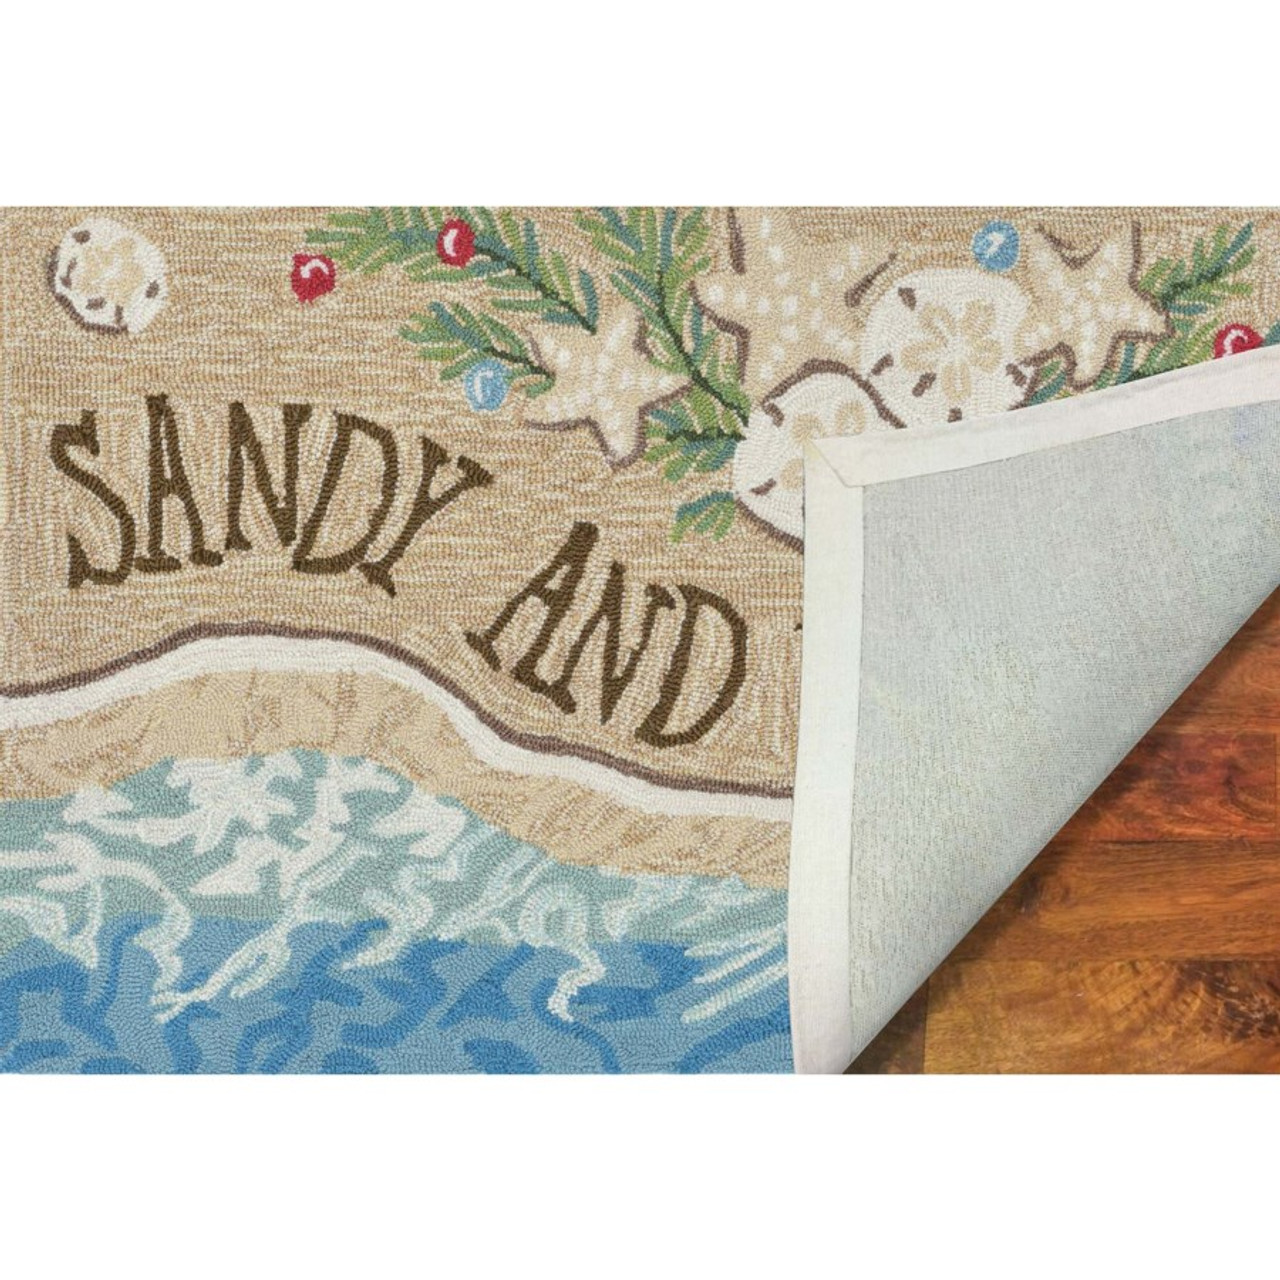 """Frontporch """"Sandy and Bright"""" Indoor/Outdoor Rug - Backing"""